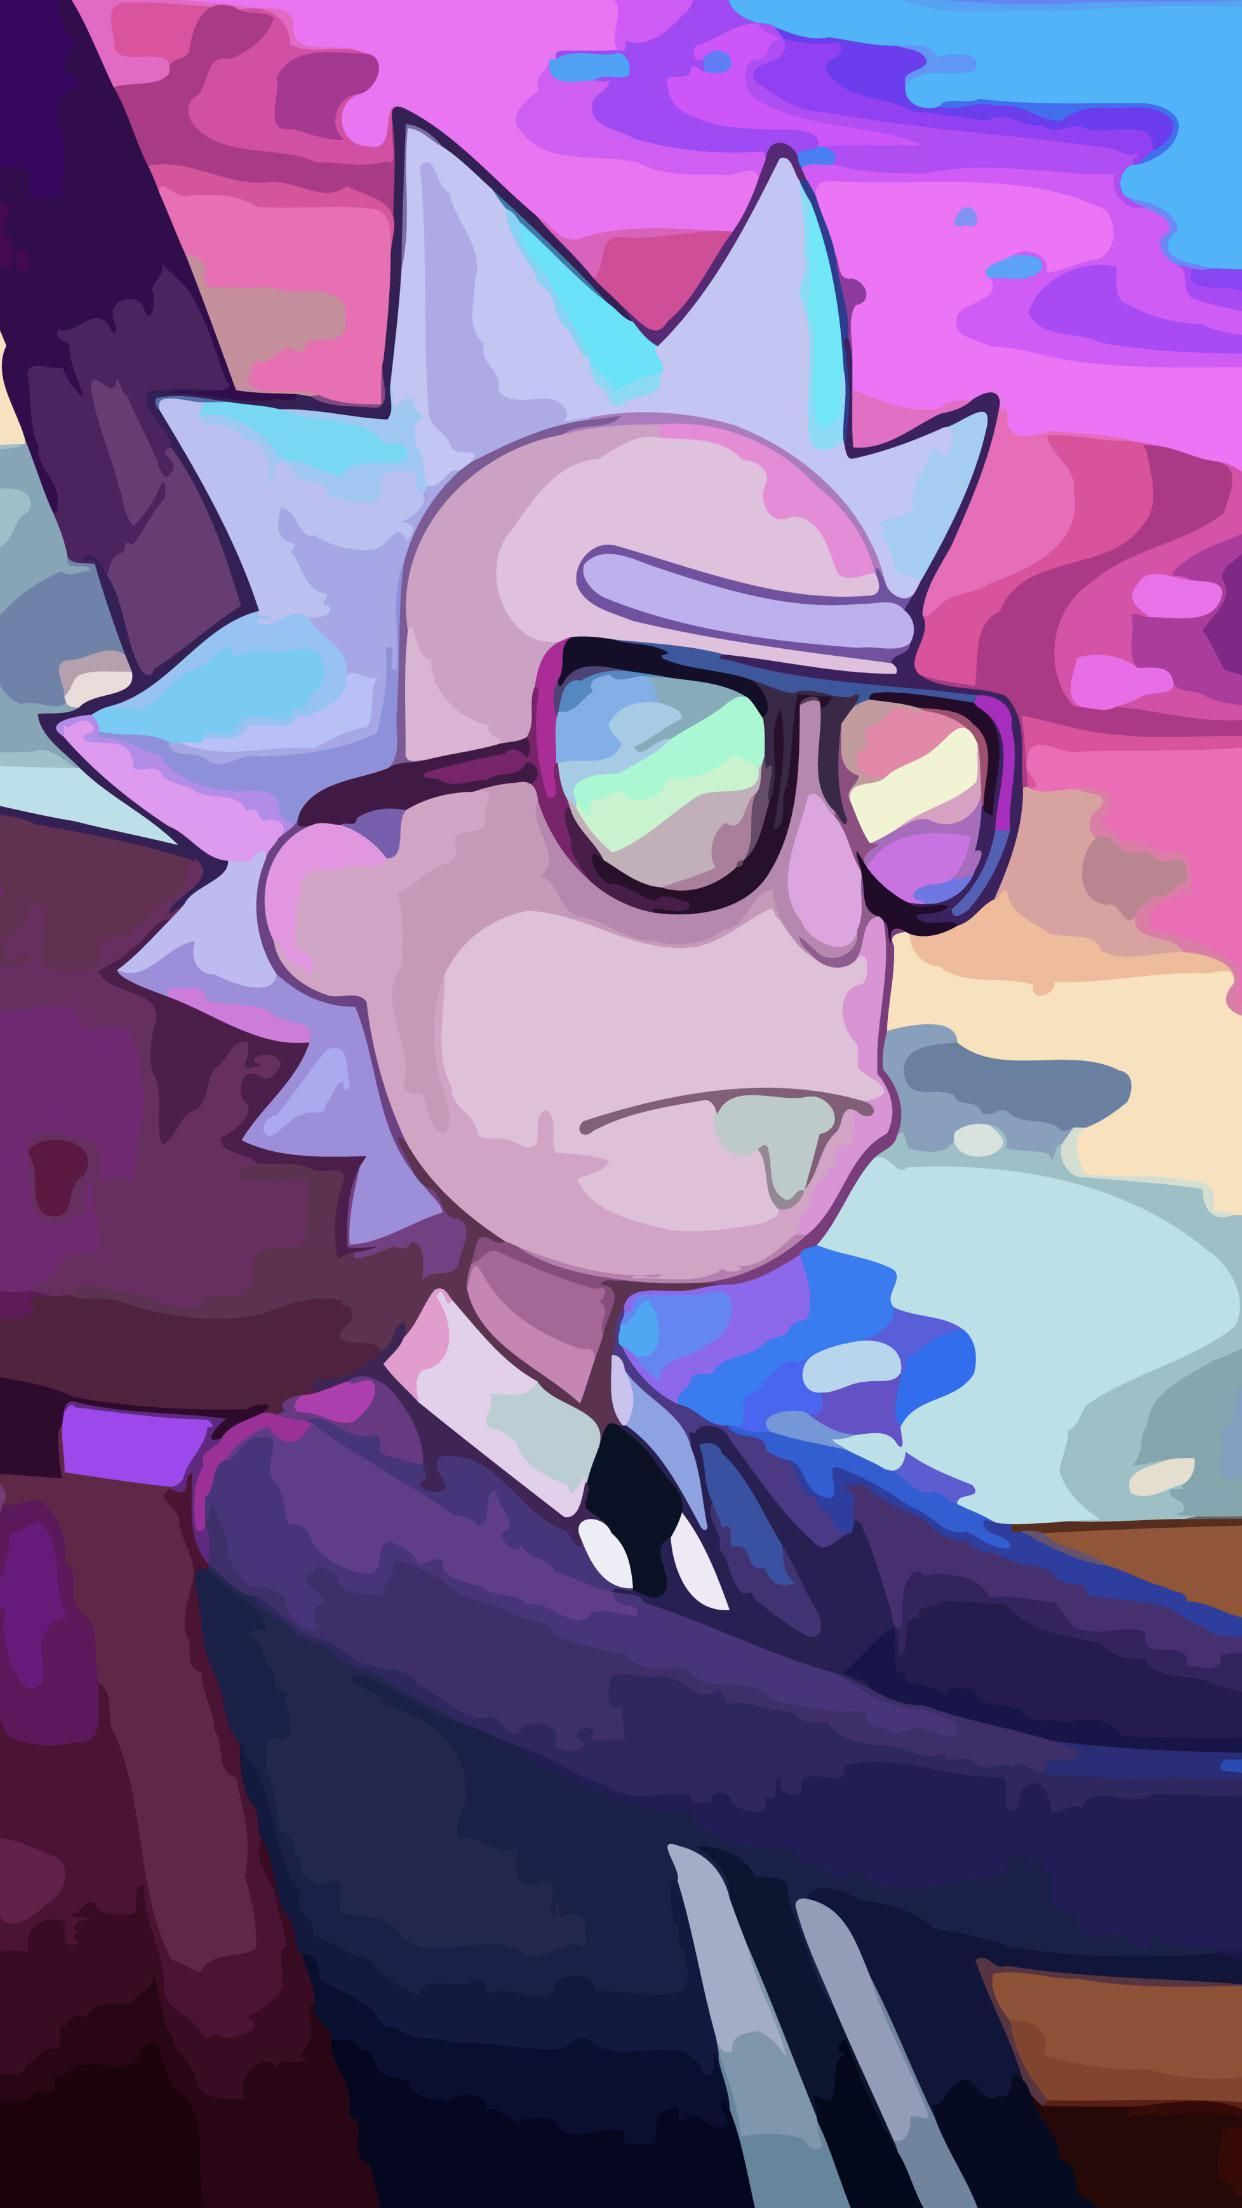 Here Is A Nice Trippy Rick Wallpaper For Mobile Phones Enjoy Rickandmorty Rick Pickleric Rick And Morty Drawing Rick And Morty Poster Cartoon Wallpaper